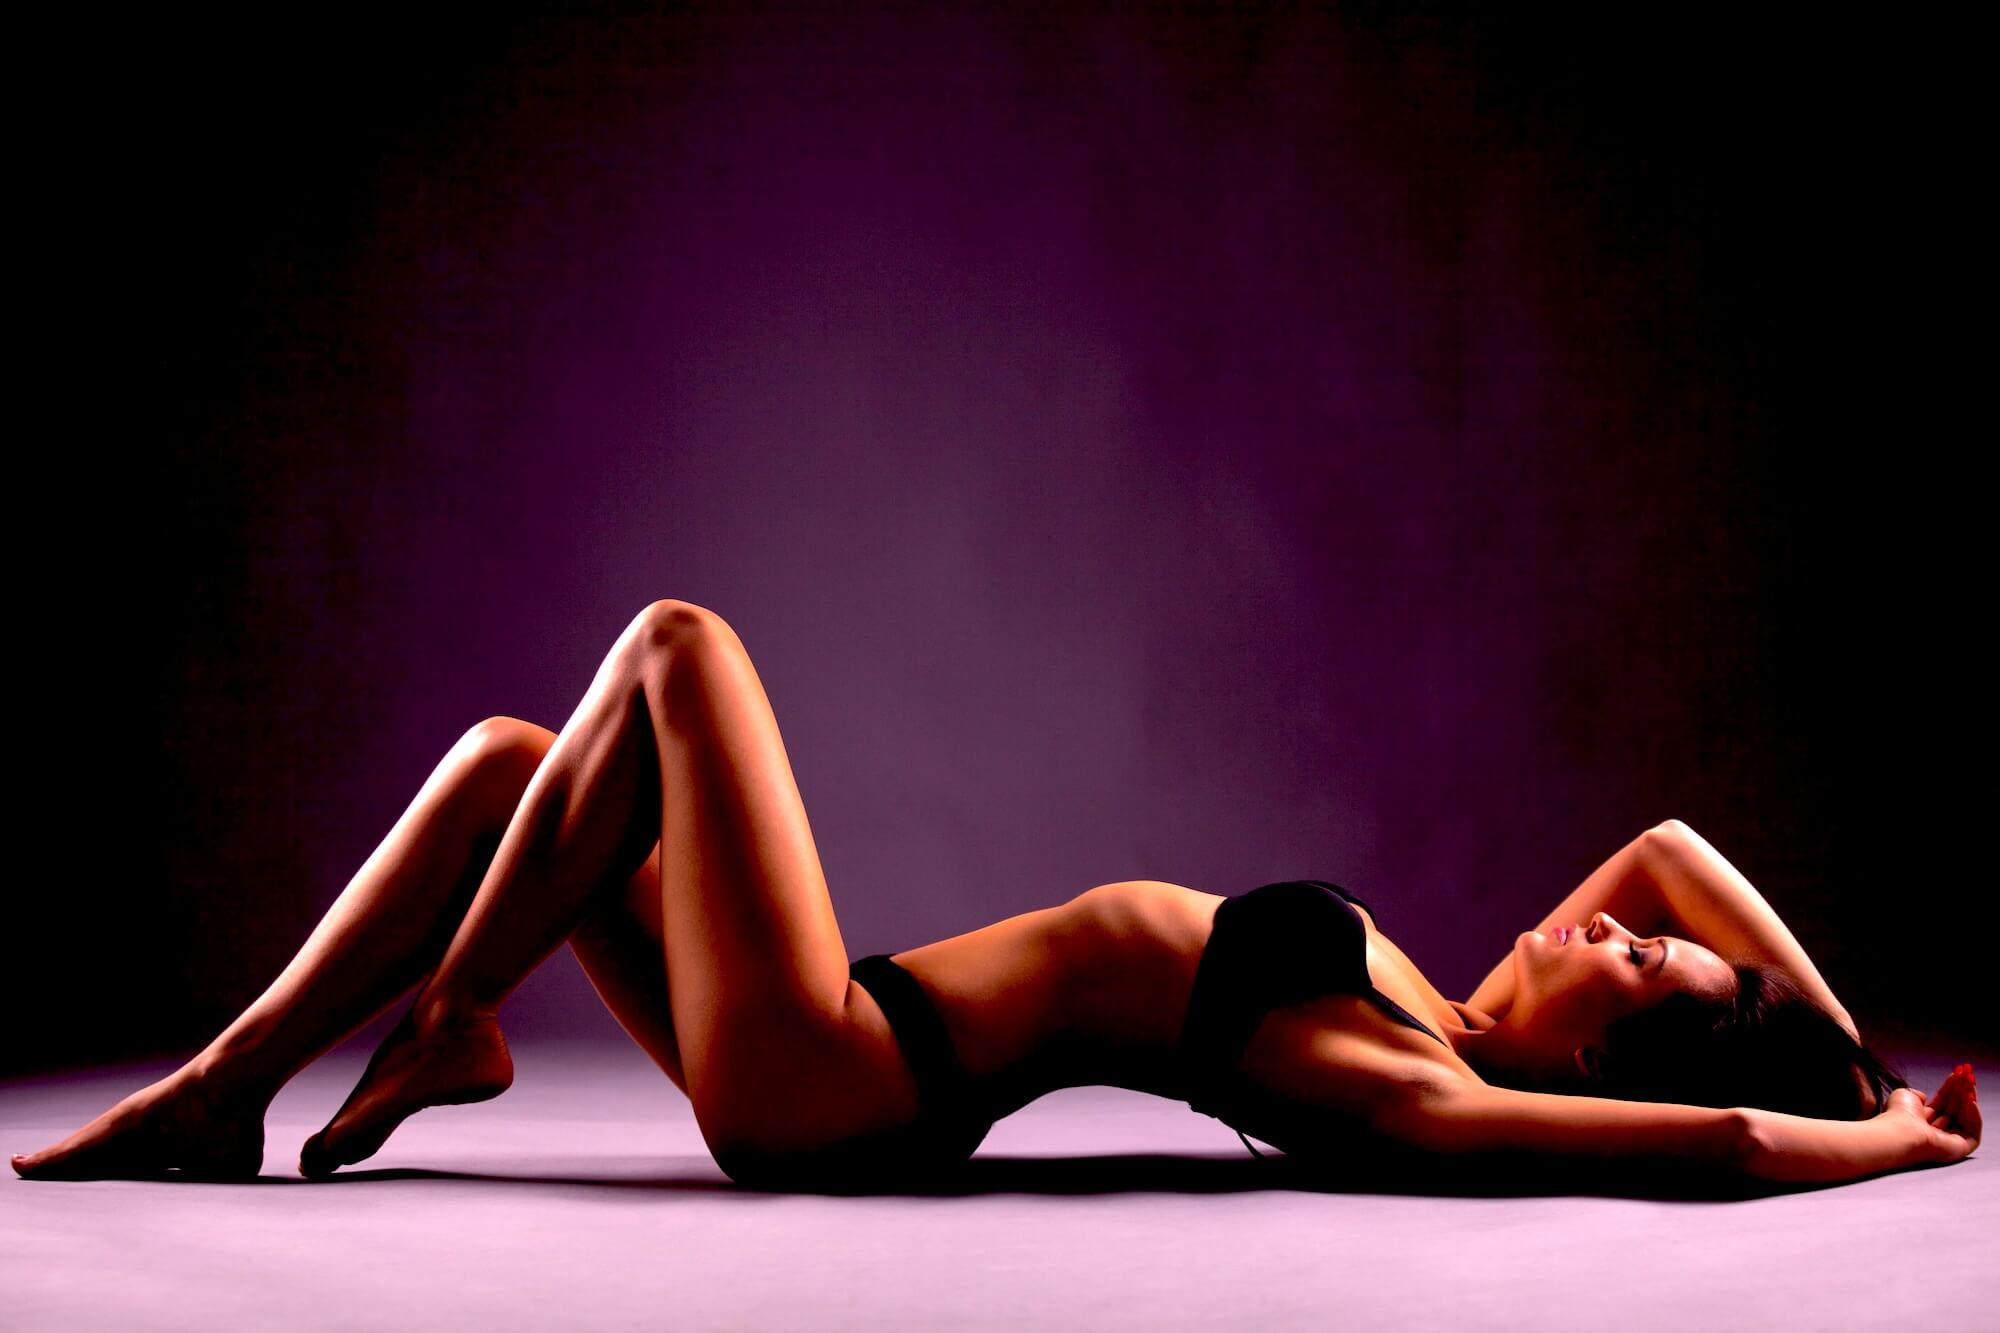 new-york-woman-liposuction